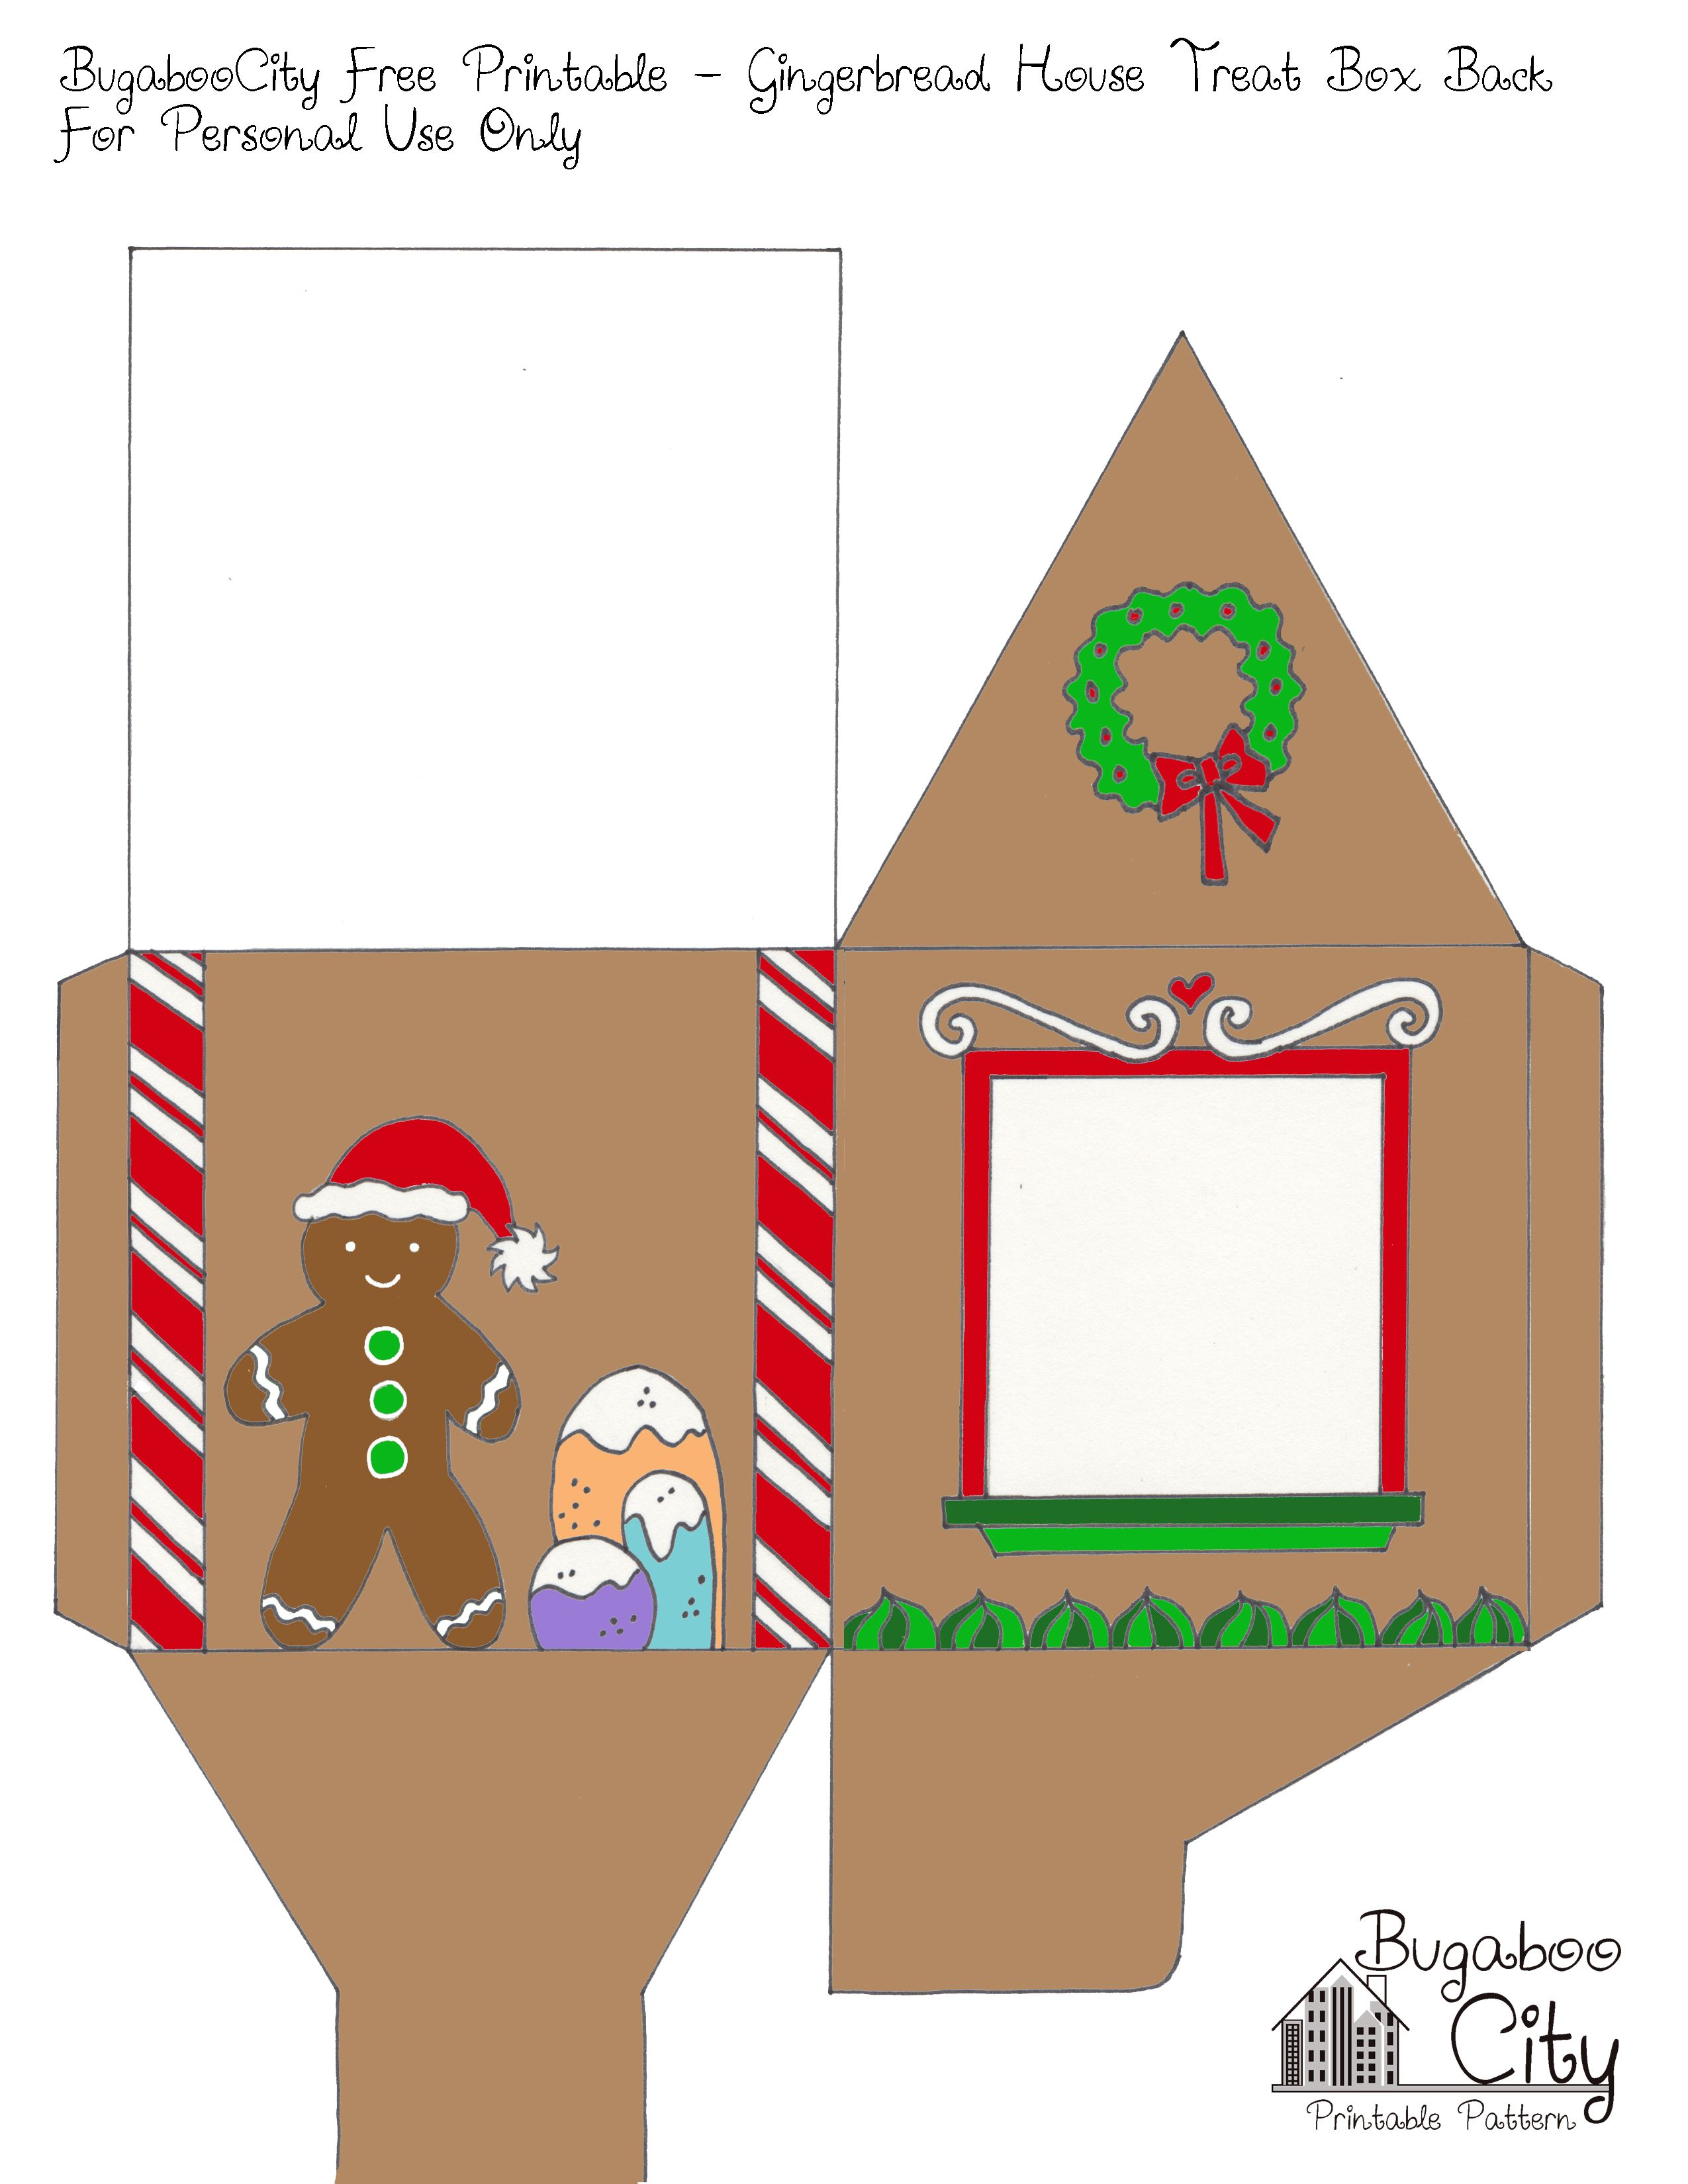 Gingerbread house free printables - Dollhouse Miniatures Printables Google Search Gingerbread House